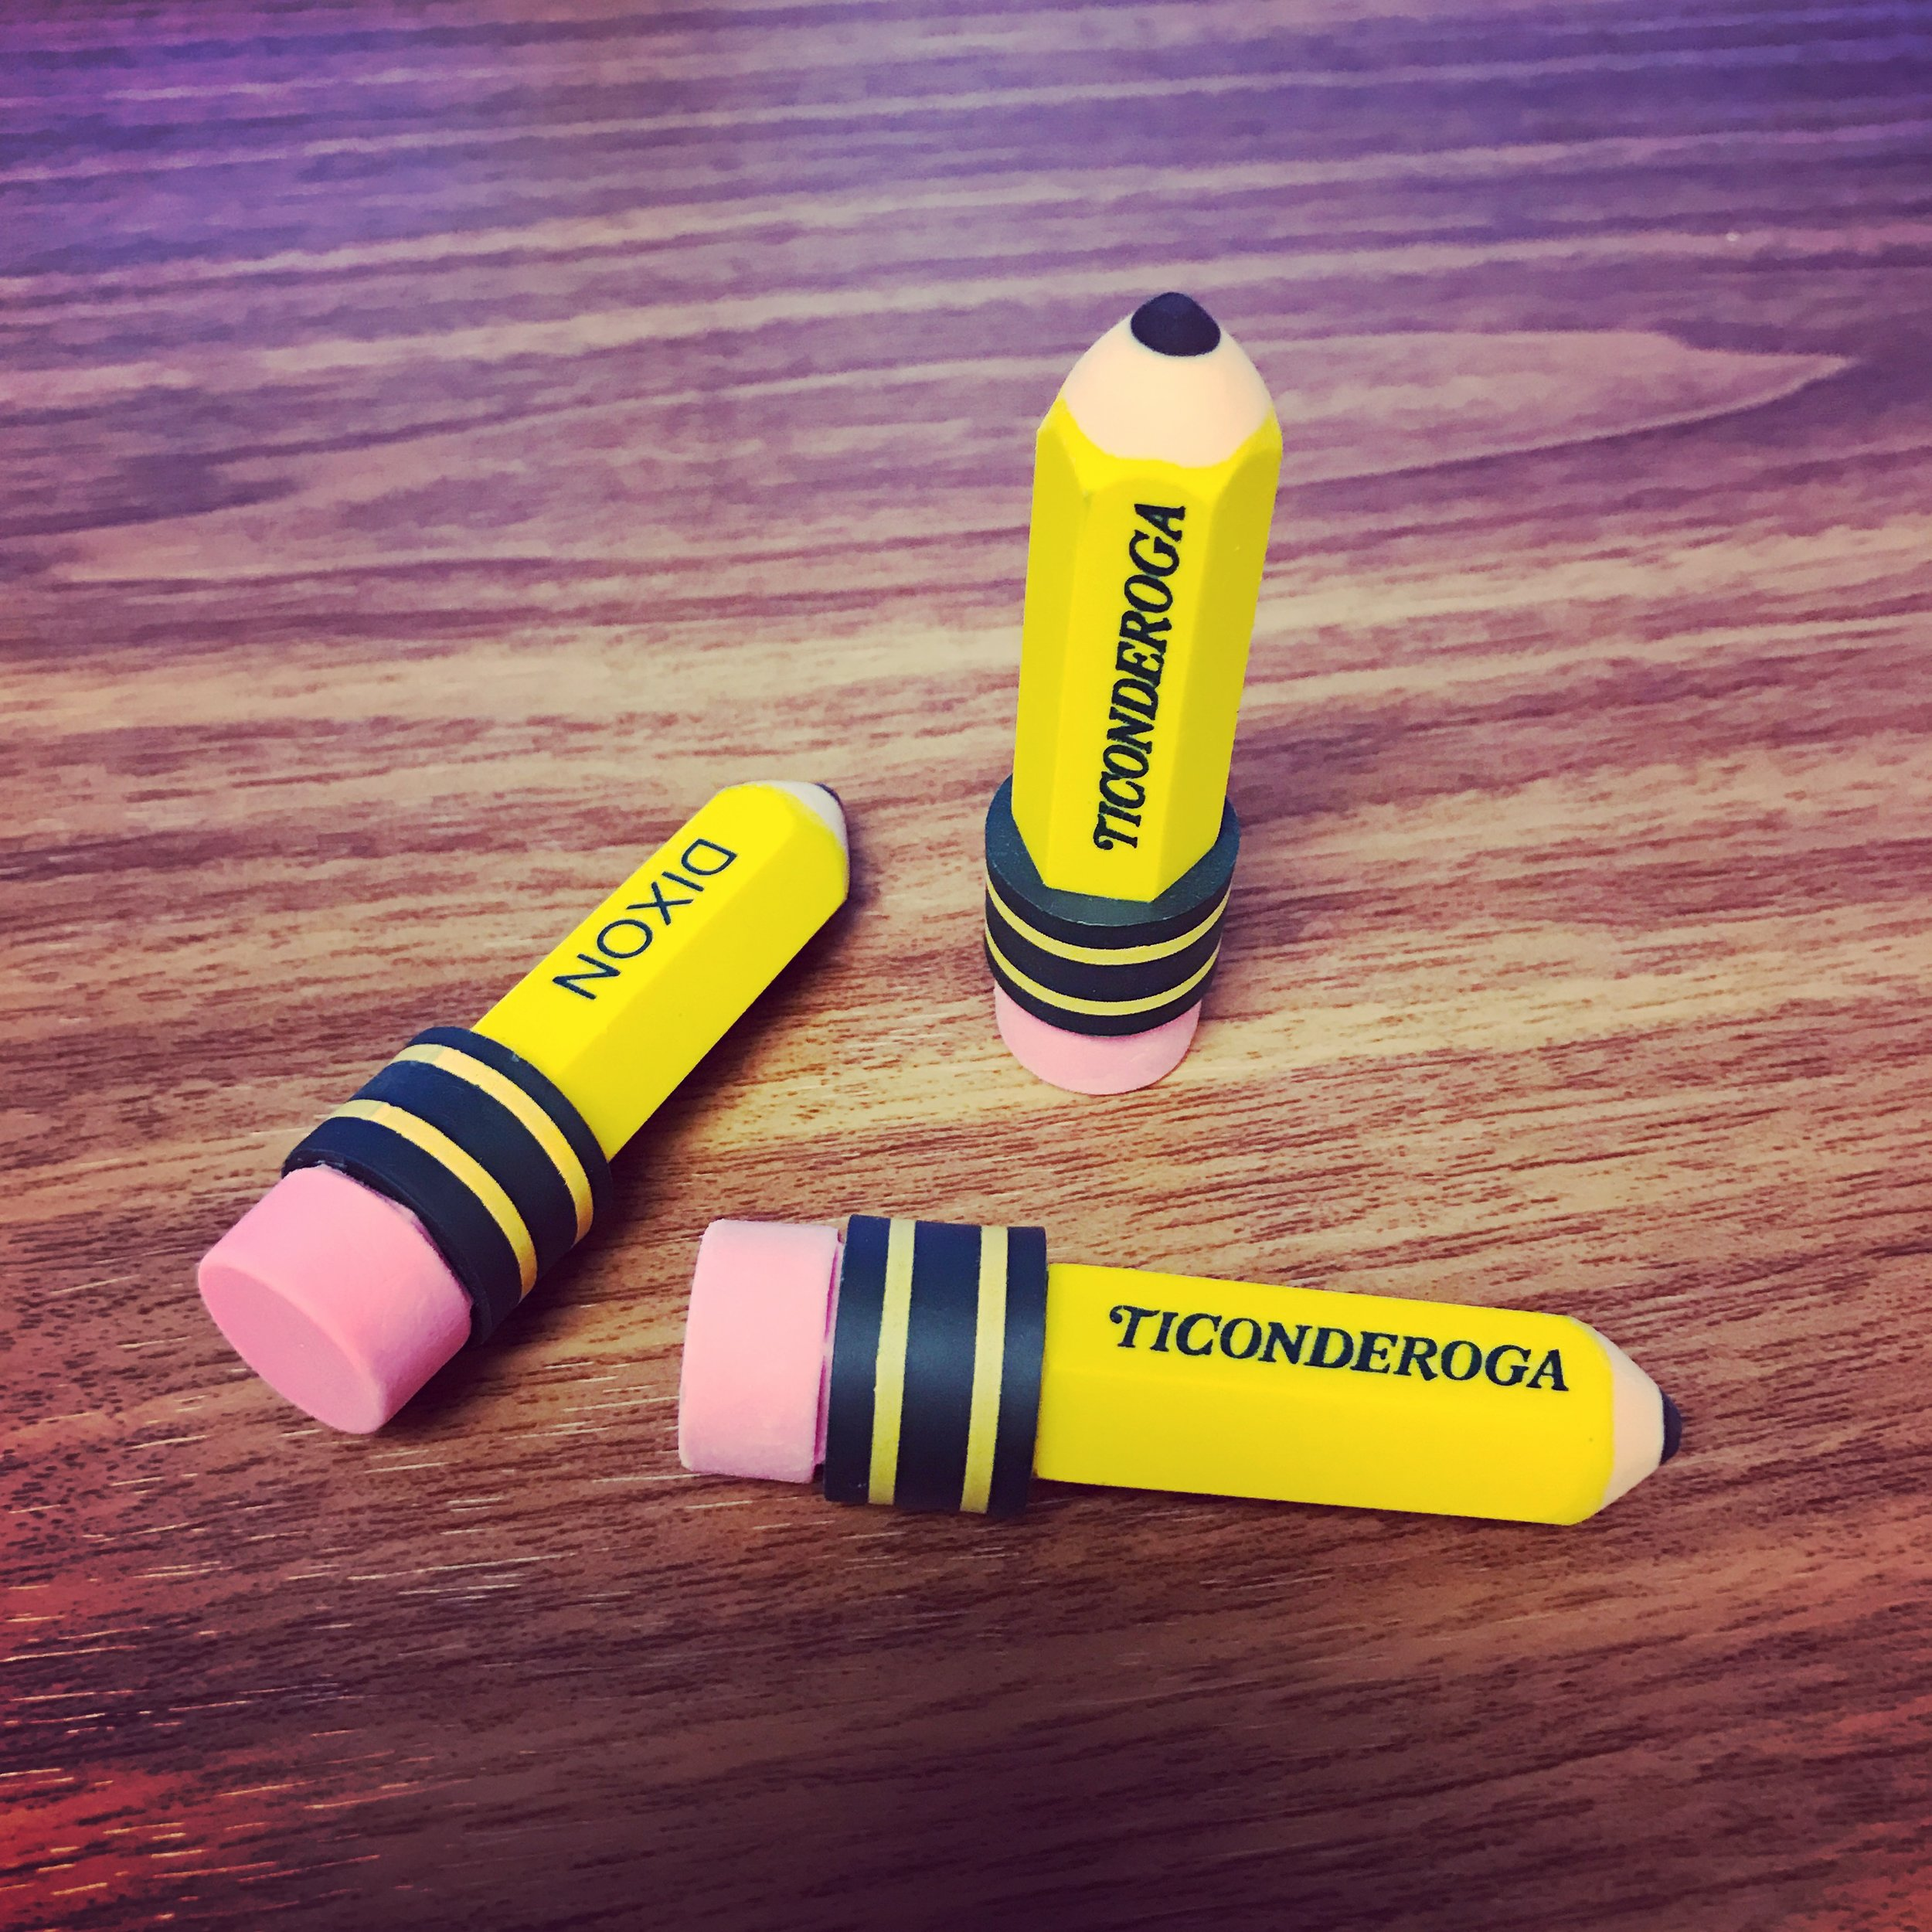 Office Mall also sells these awesome pencil-shaped Ticonderoga erasers.